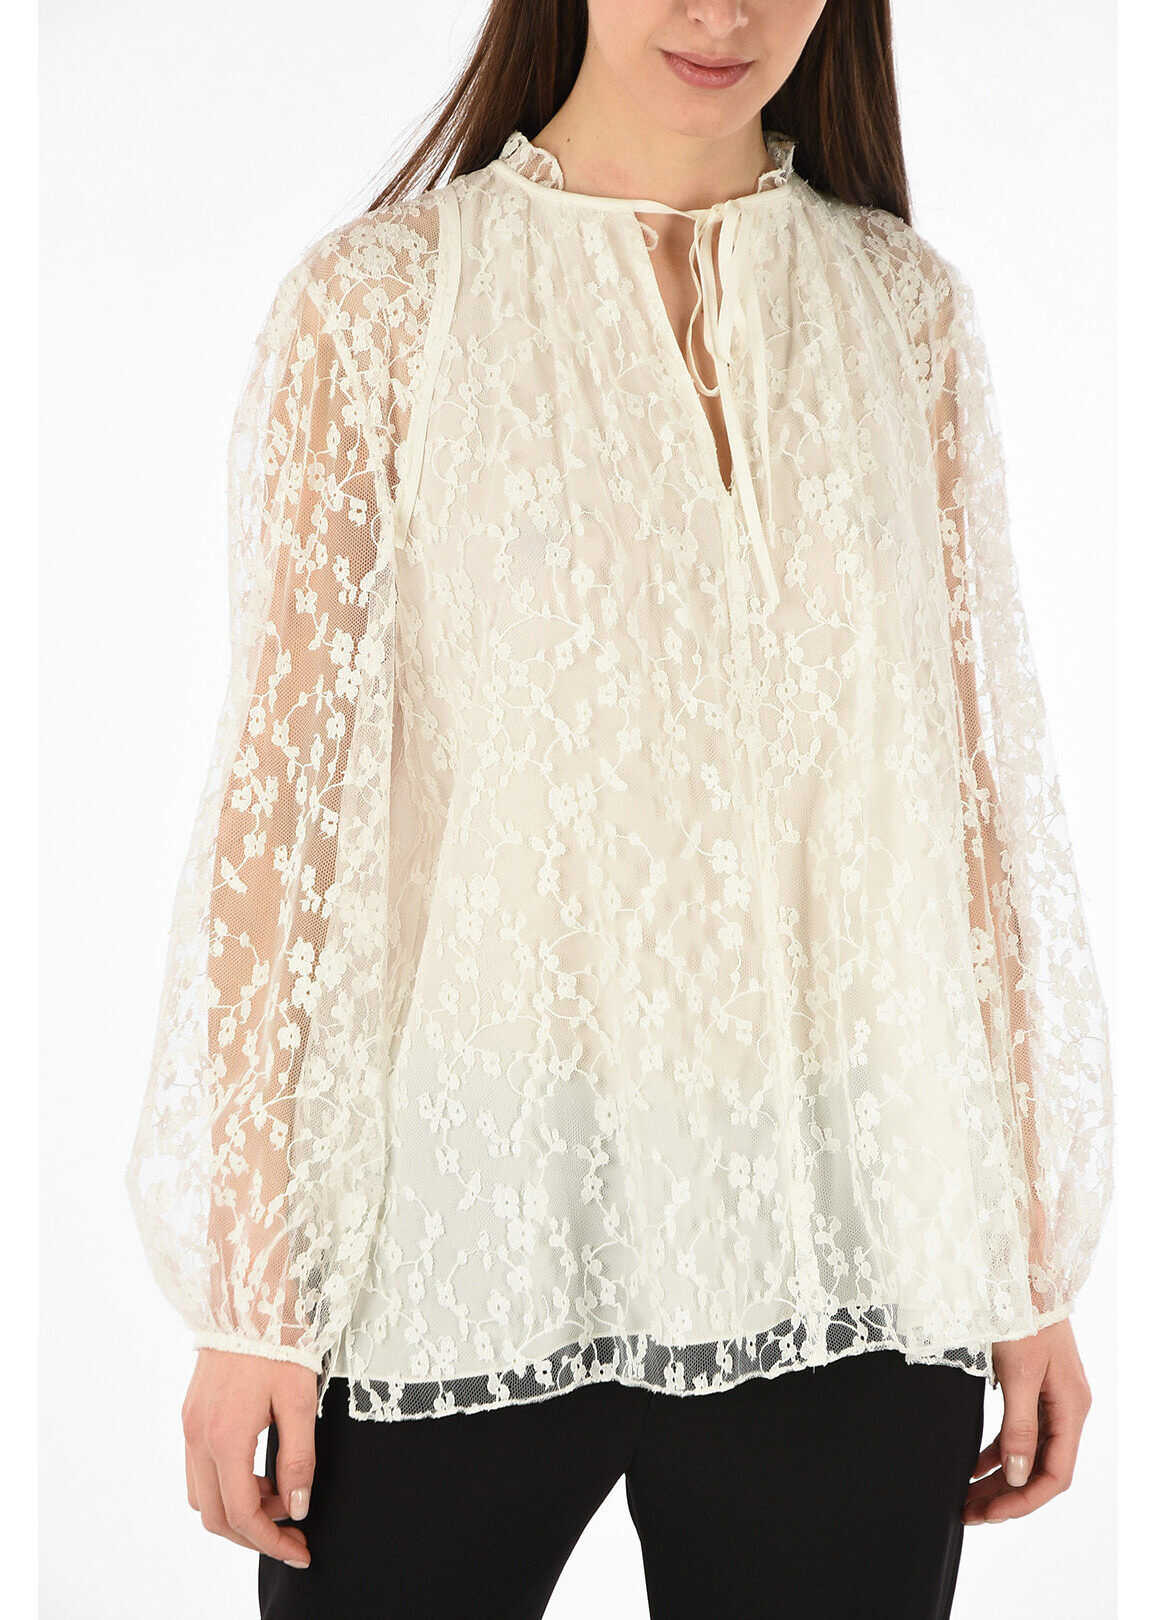 Chloe lace blouse WHITE